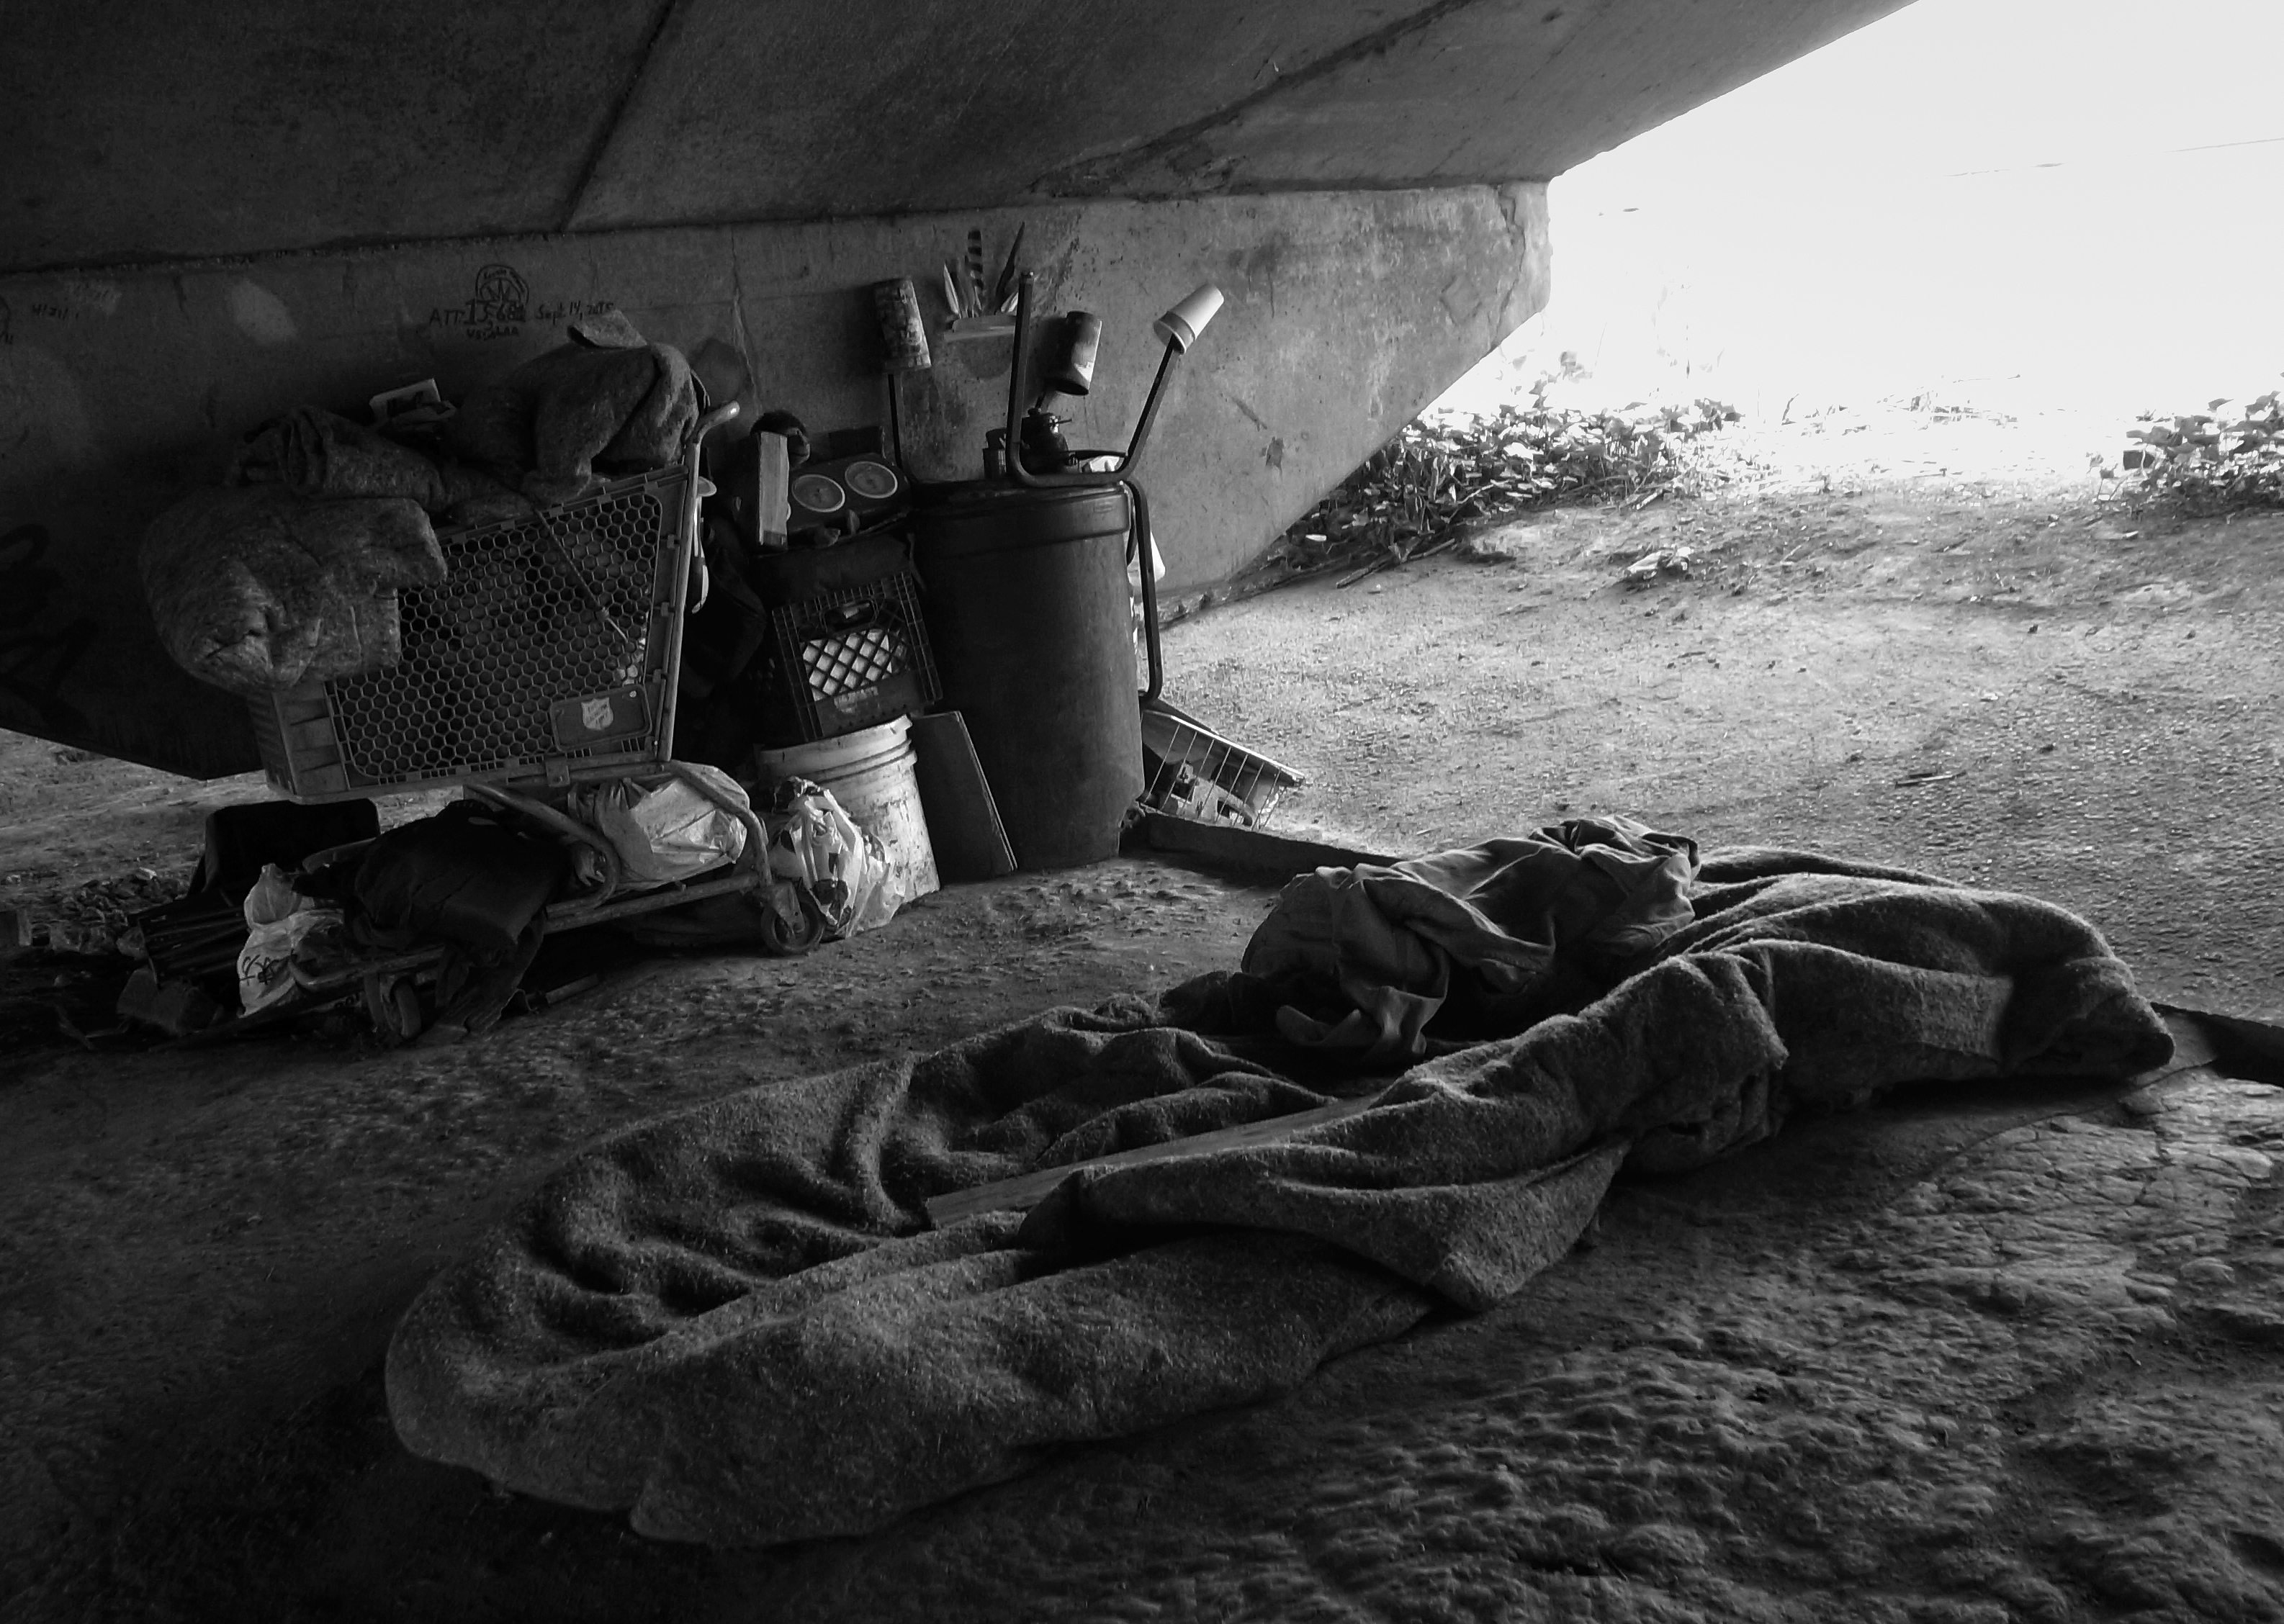 A shopping cart and objects next to a bed made of felt blankets under an overpass